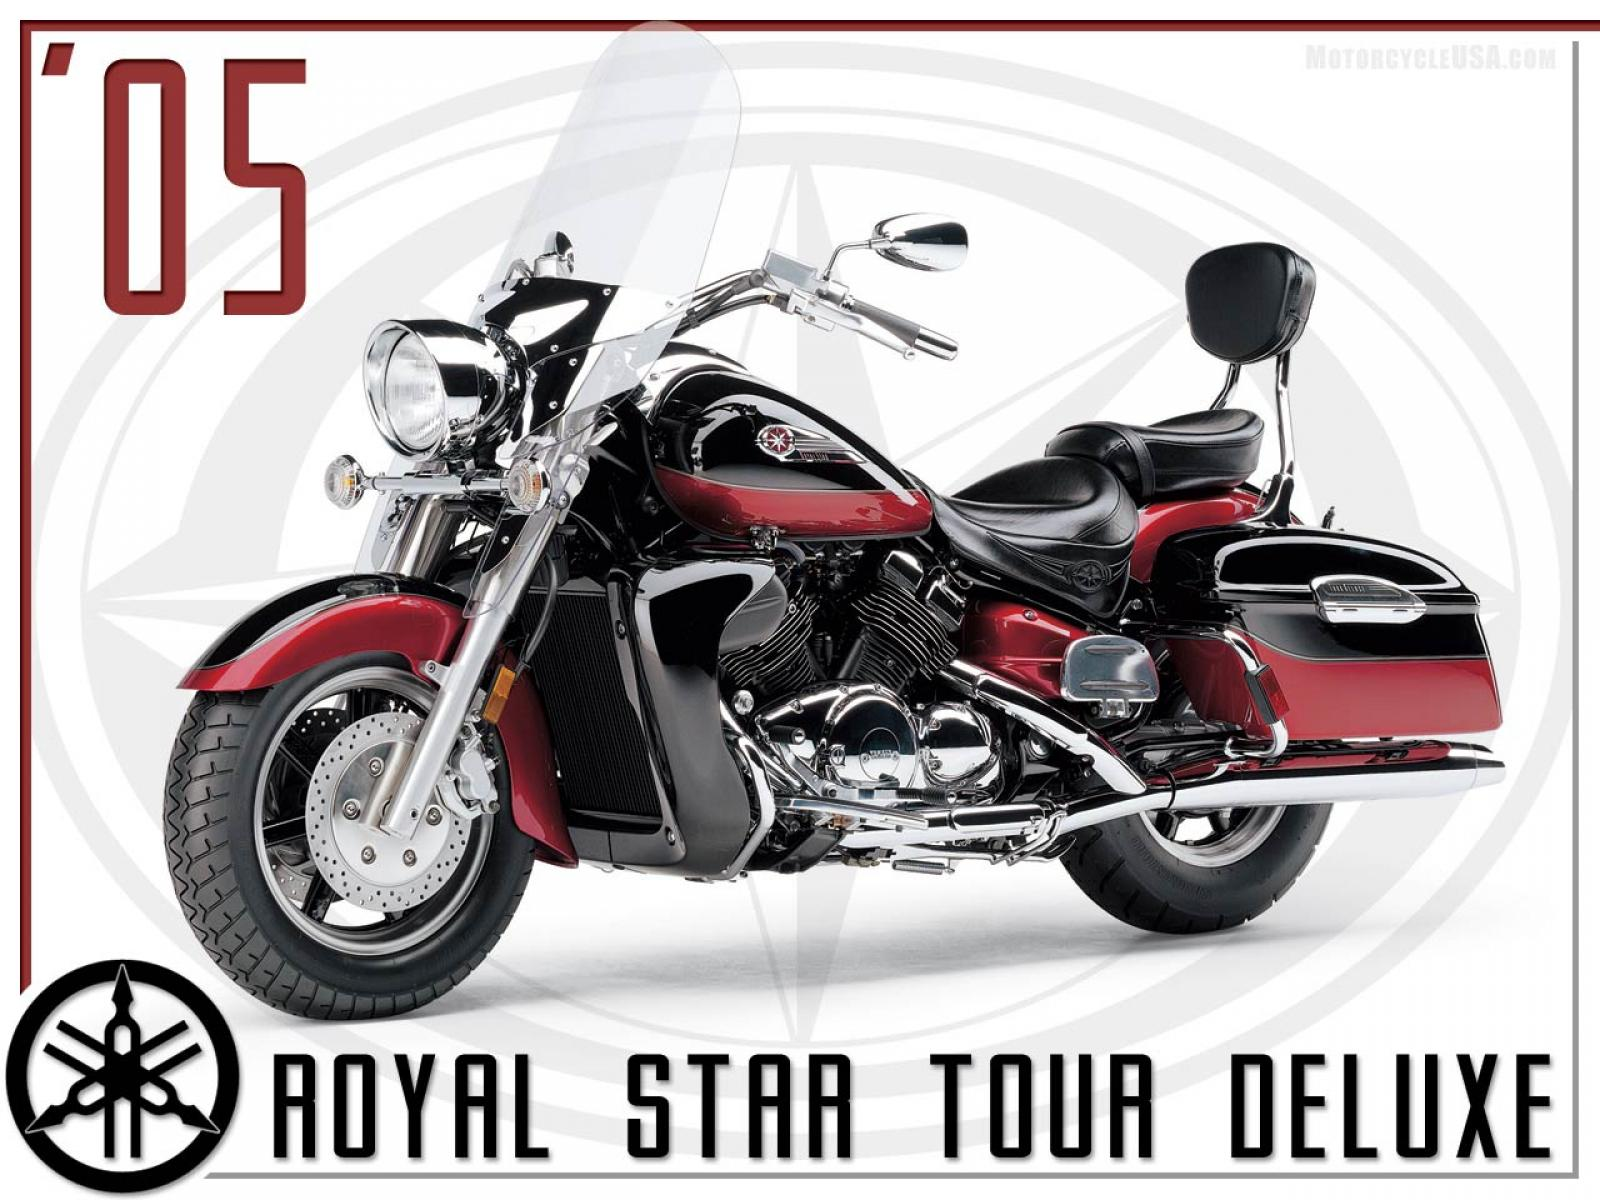 Yamaha Royal Star Tour Deluxe Problems